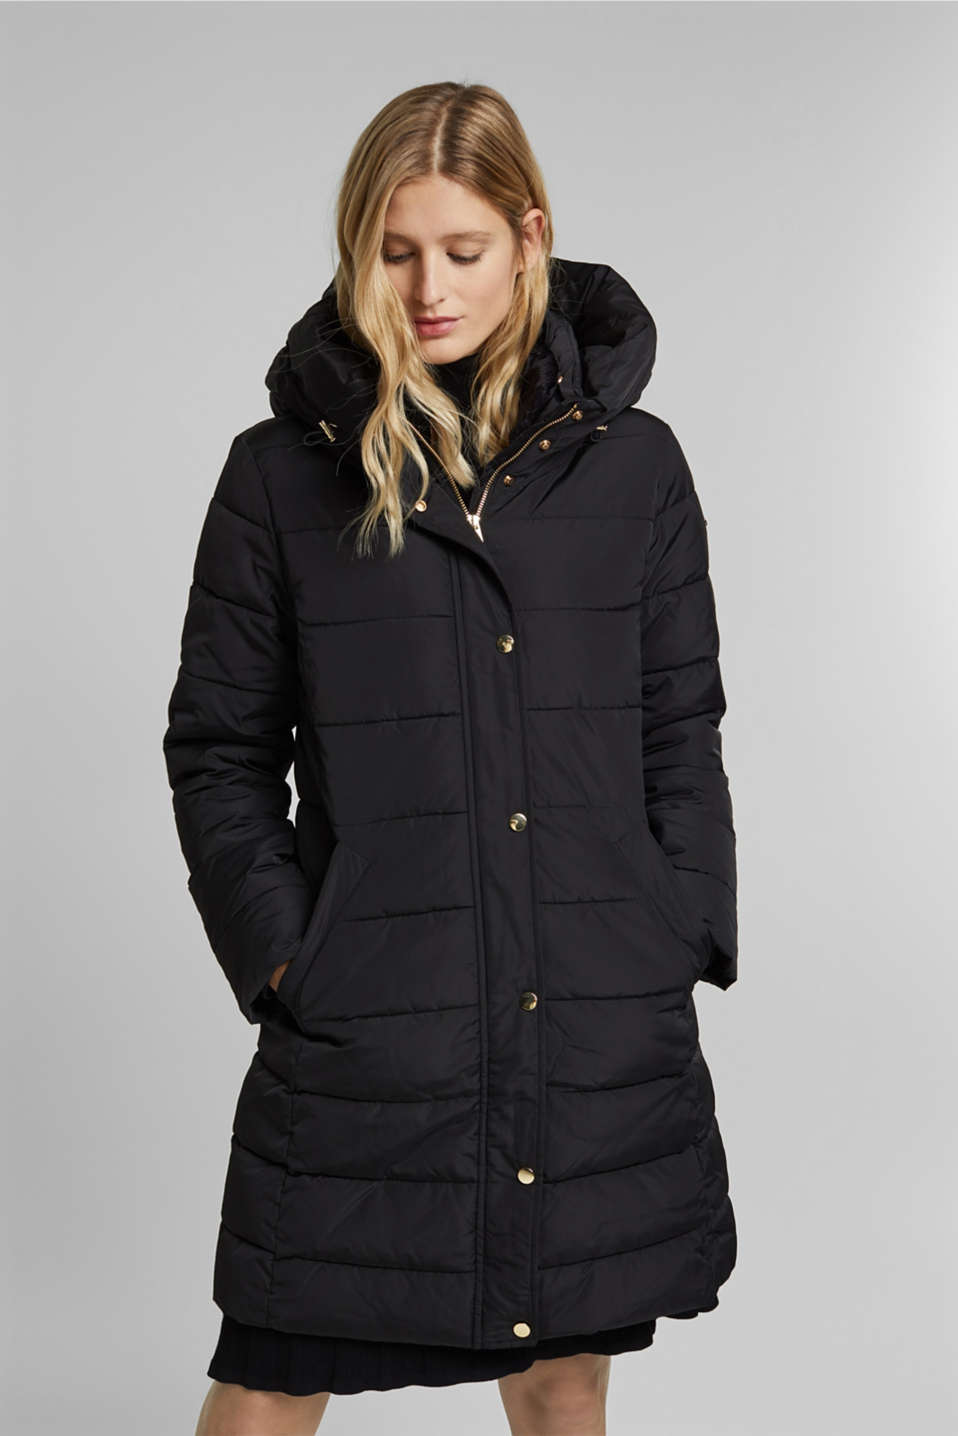 Esprit - Manteau au rembourrage 3M ™Thinsulate™